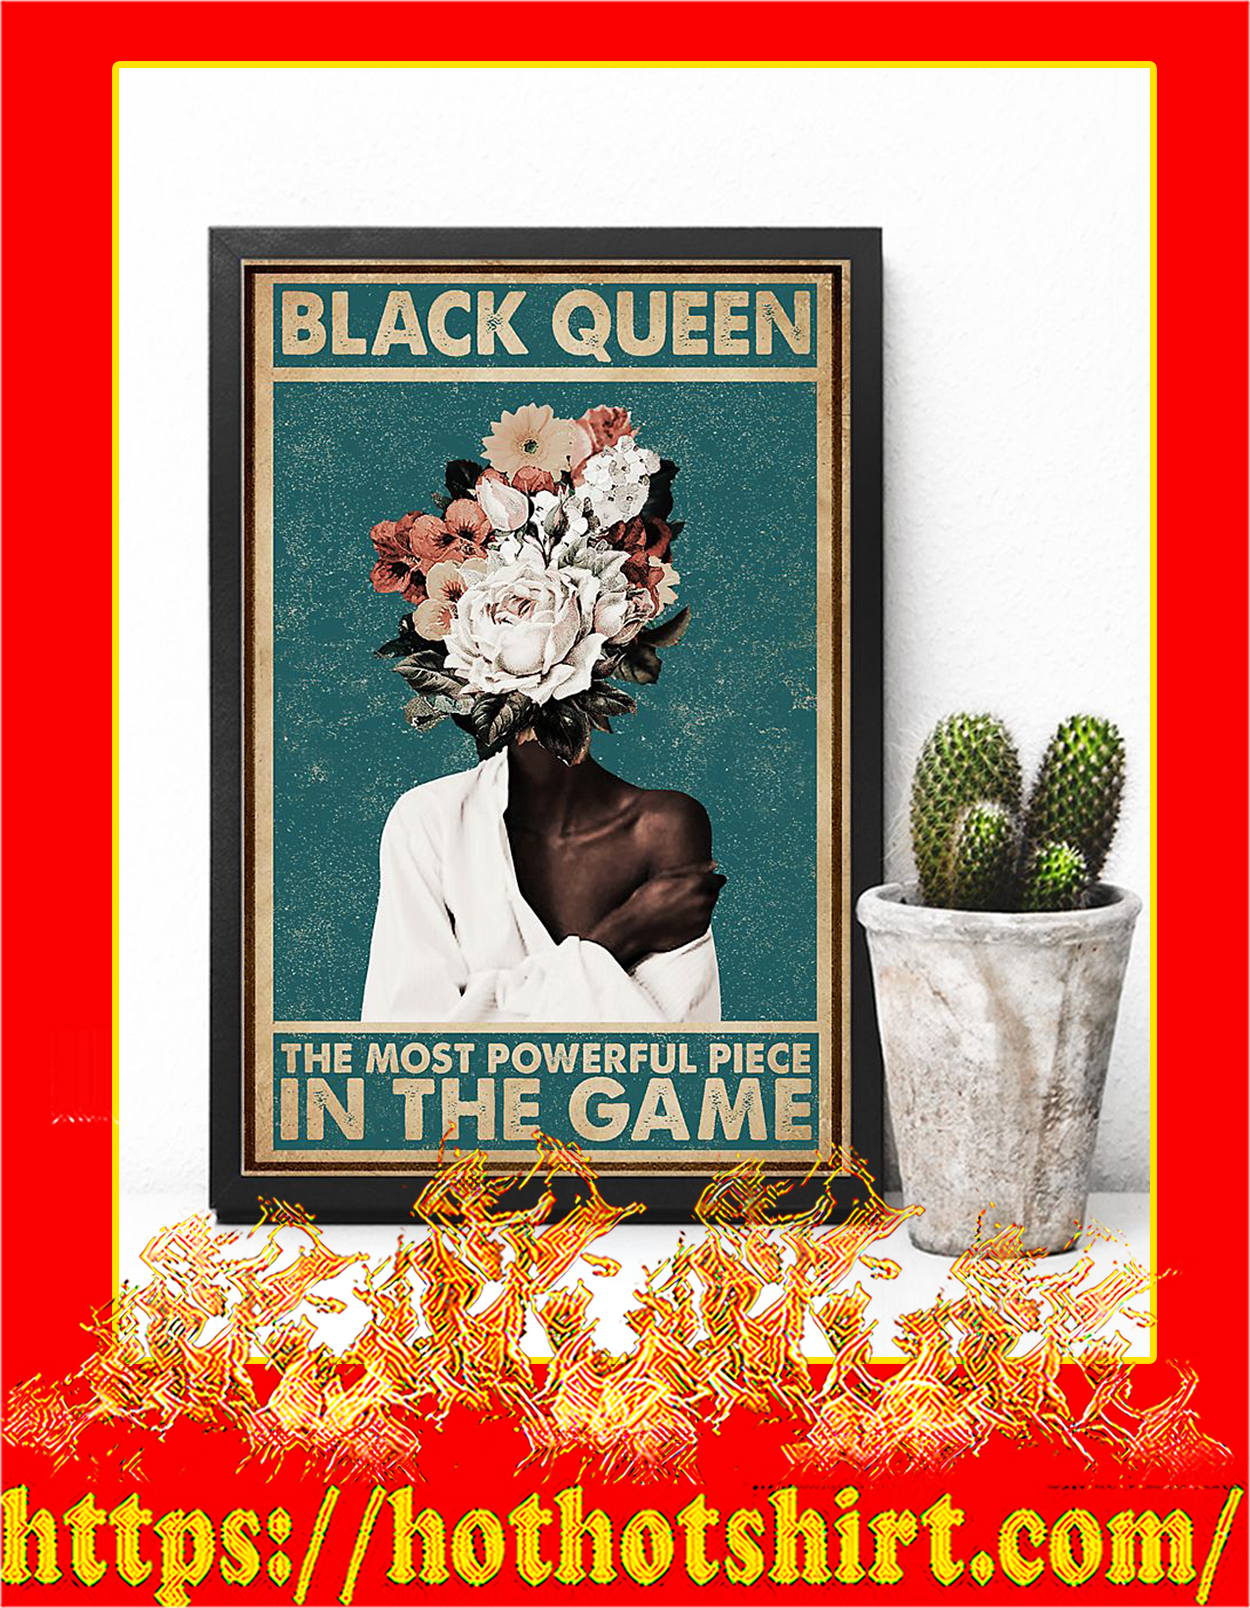 Black queen the most powerful piece in the game poster - Pic 3